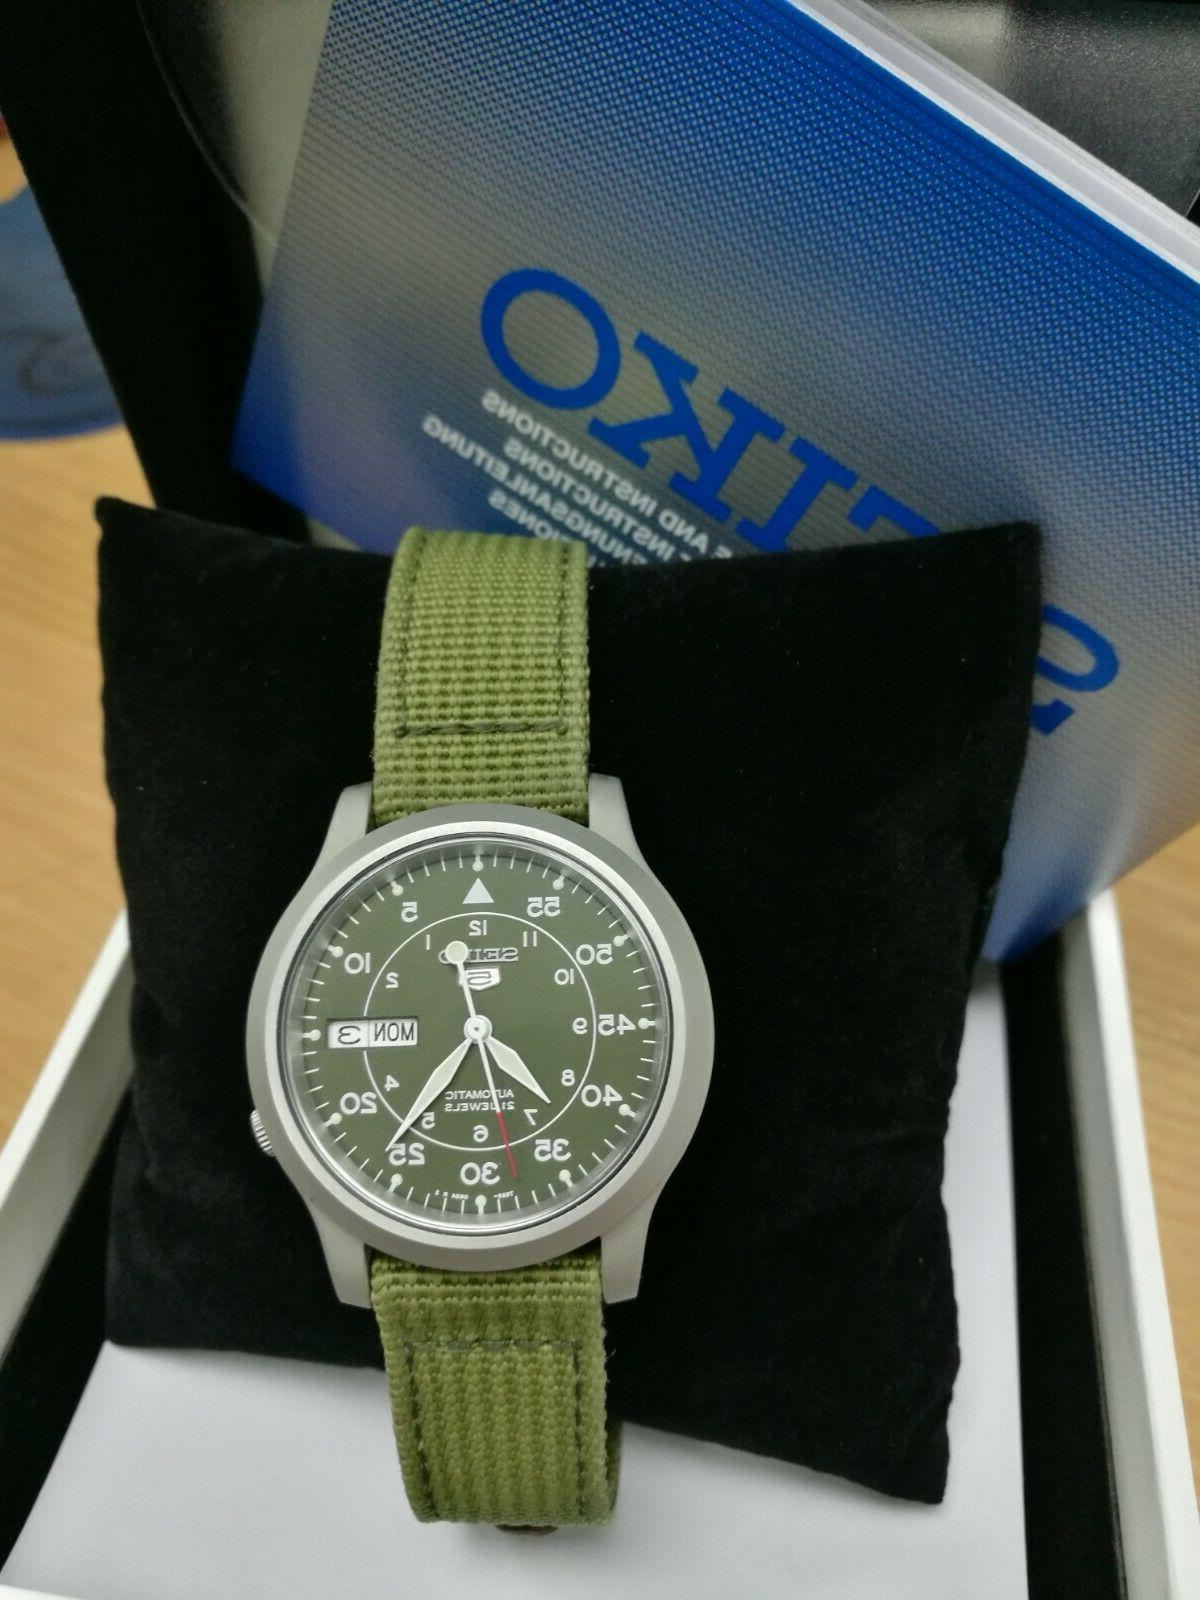 5 military automatic watch green umbrella fabric